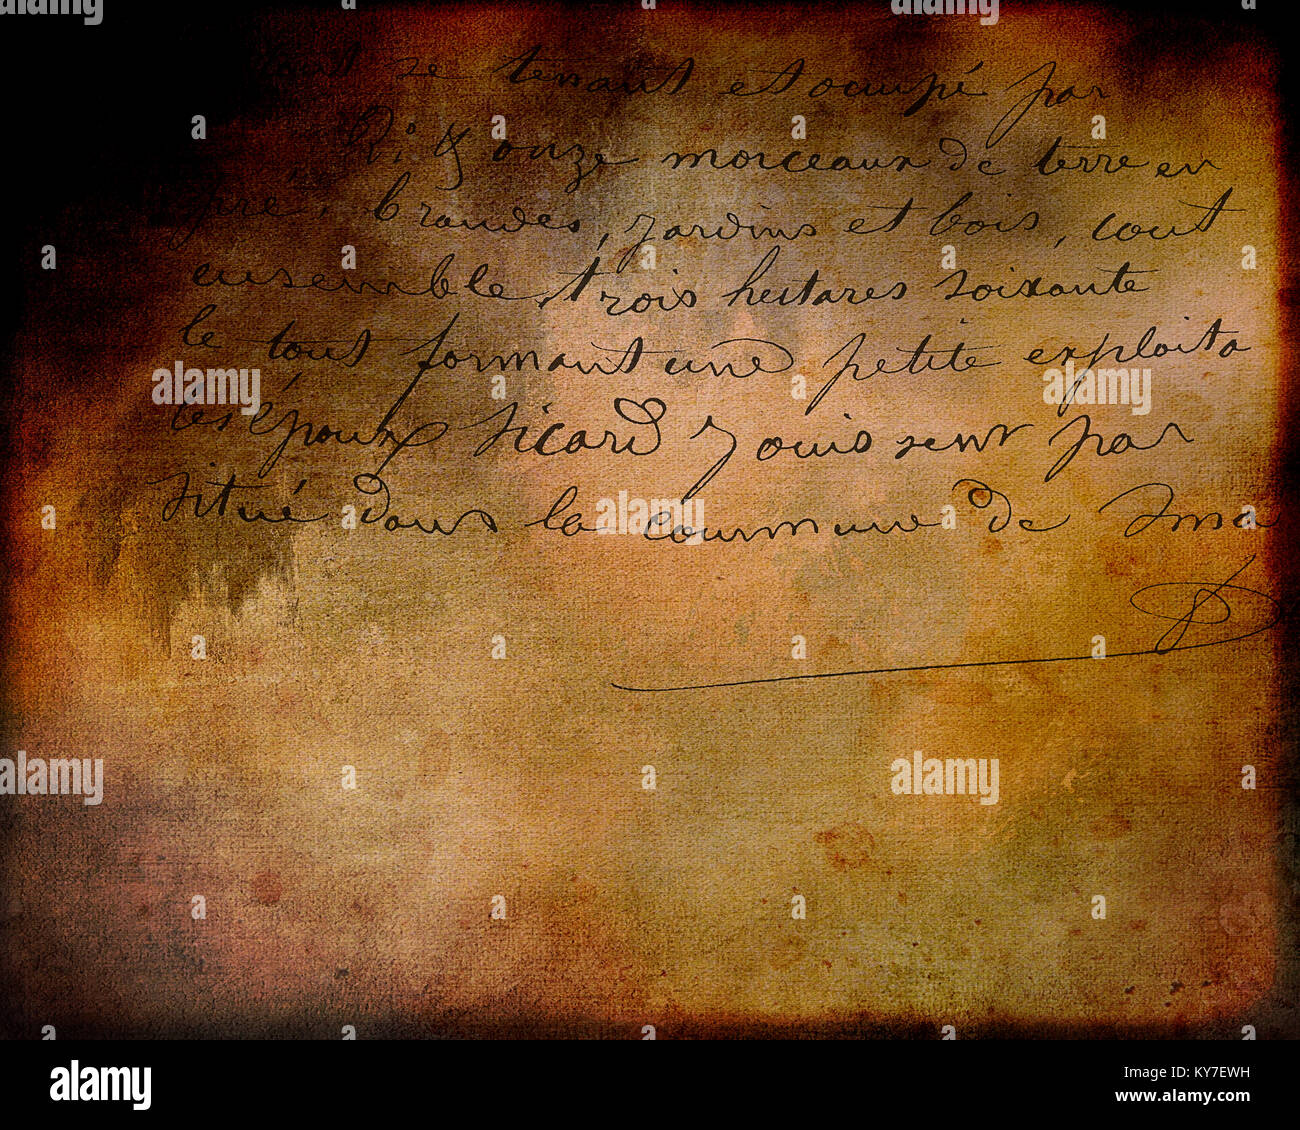 PHOTOGRAPHIC ART: The Letter - Stock Image